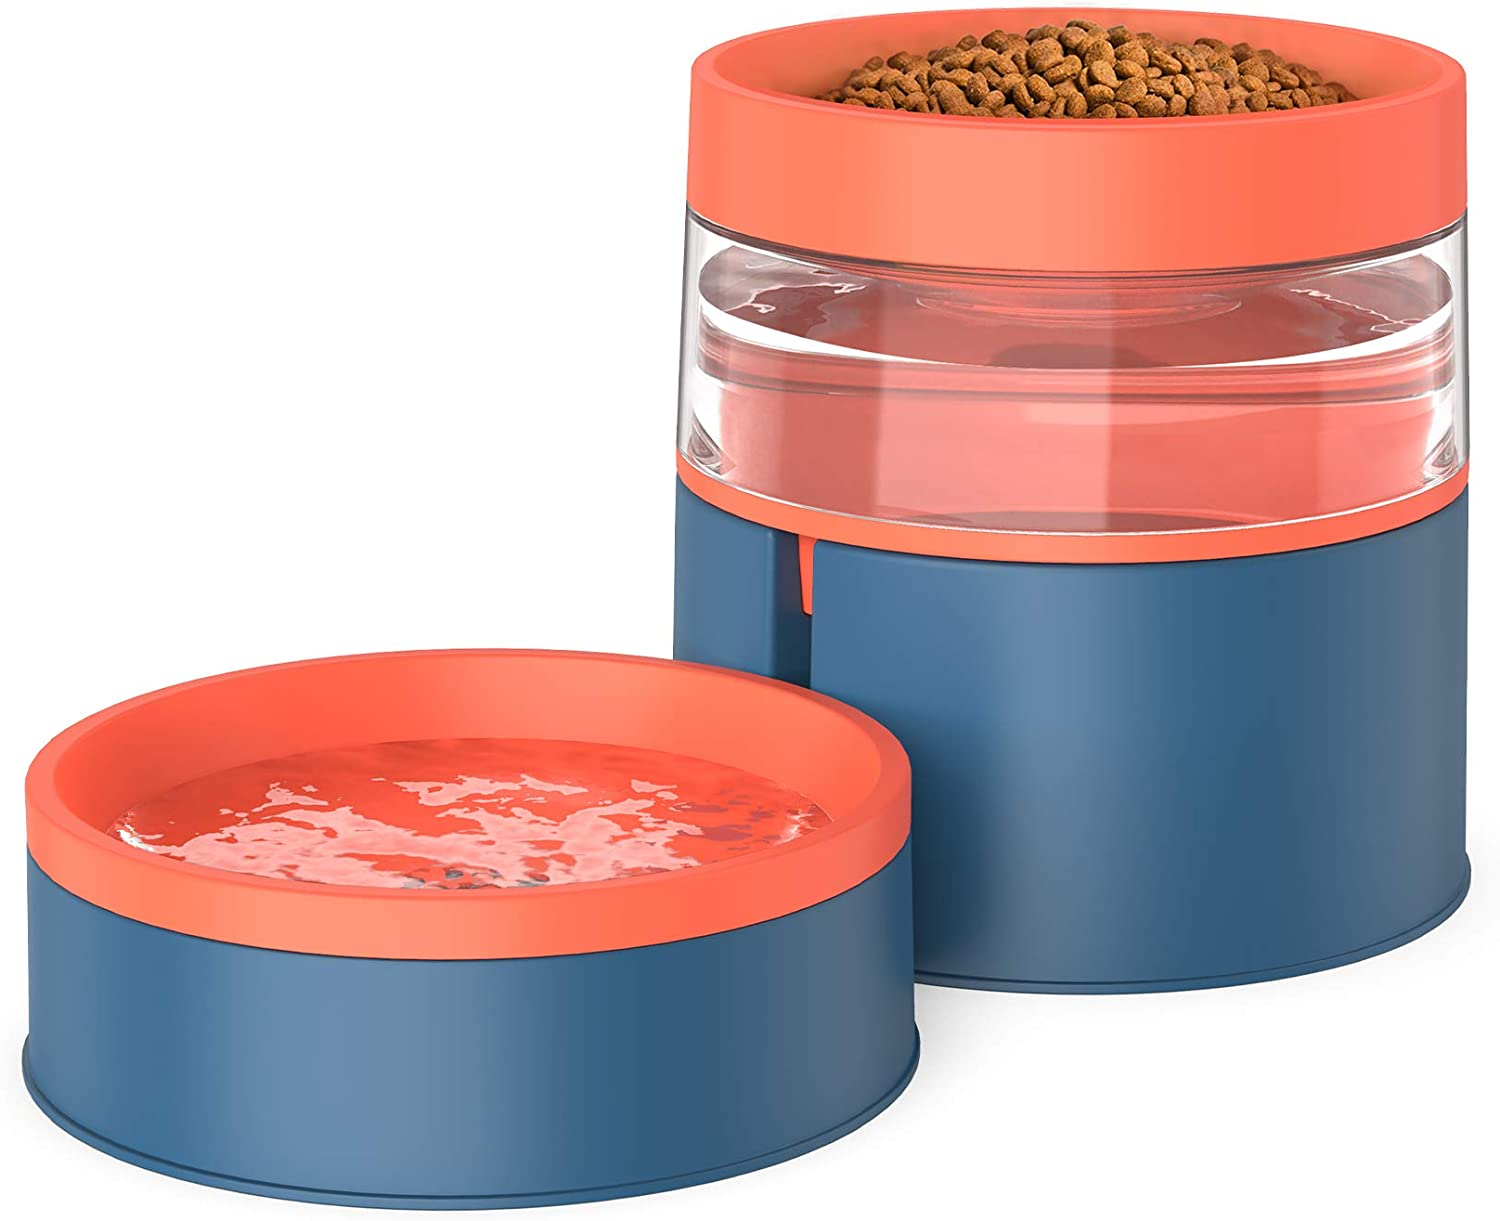 KALUDYA Double Dog Cat Bowls - 2 in 1 Automatic Pet Feeder,Detachable Gravity Water Dispenser and Food Bowl Set for Cats/ Puppies,Upgrade Design Anti Vomiting Raised Cat Bowls-Blue